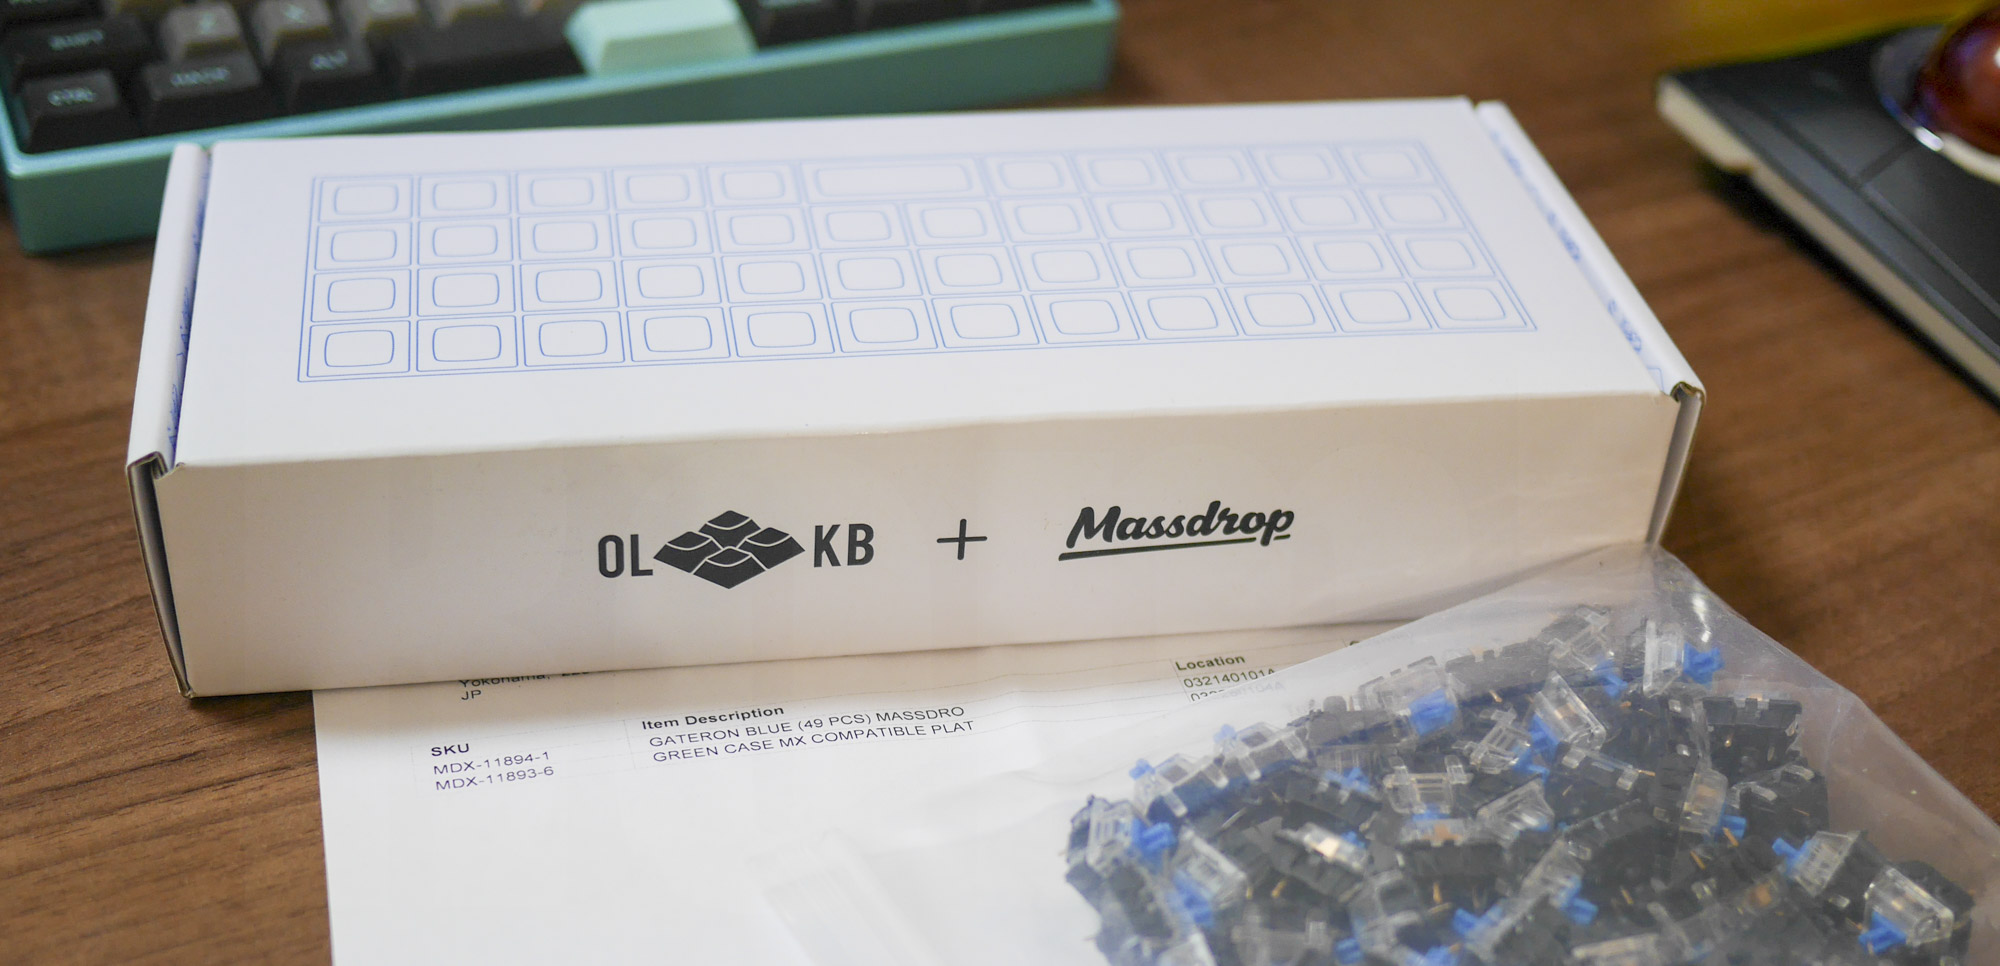 Massdrop x OLKB Planck Mechanical Keyboard Kit